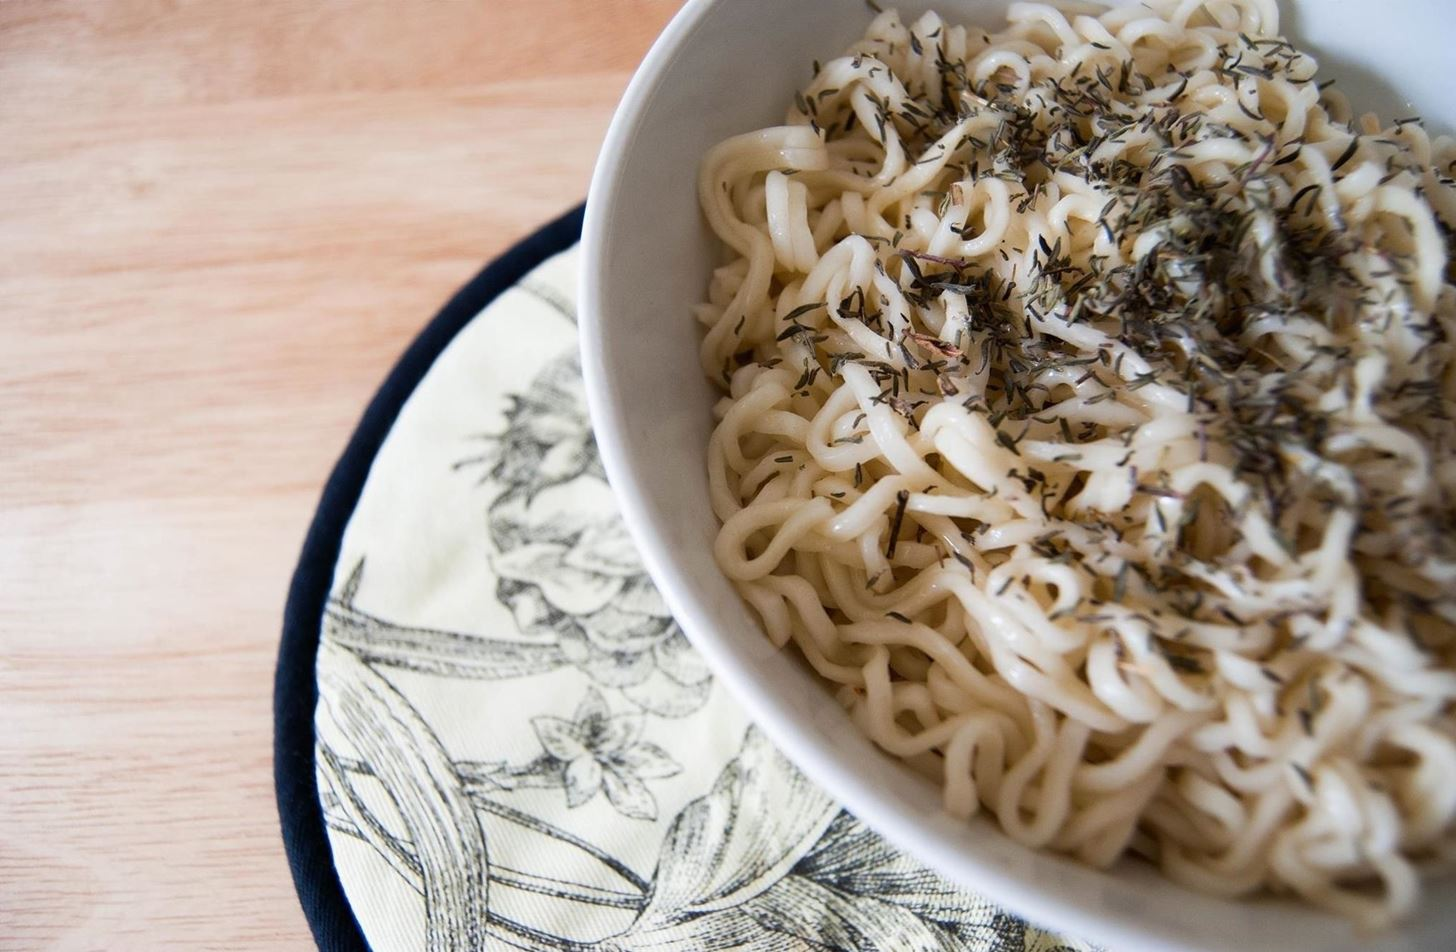 The Secret to Quick & Easy Italian Dinners Is Instant Ramen